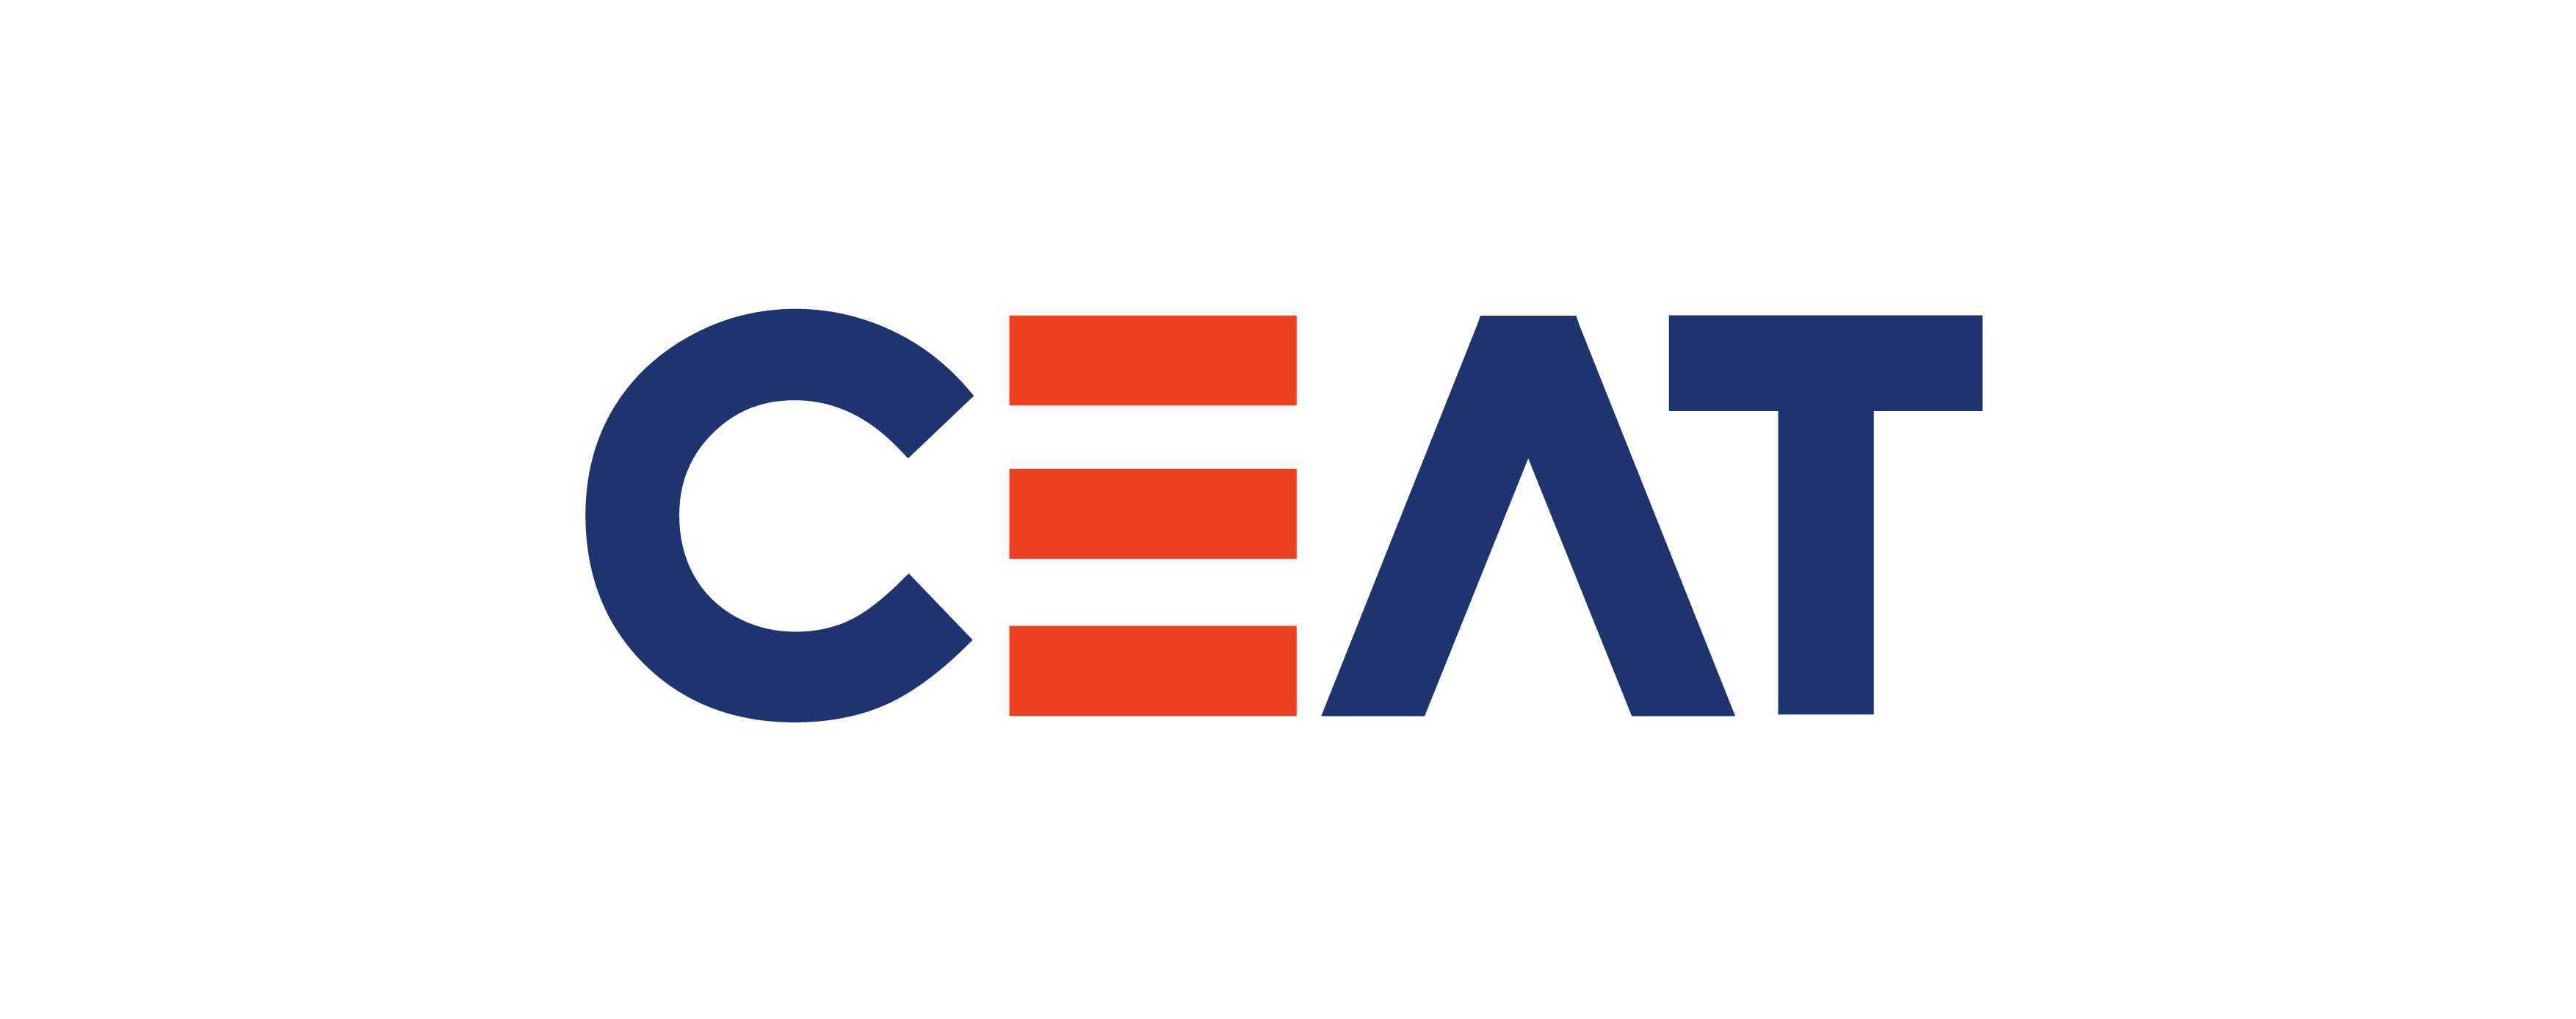 CEAT Limited